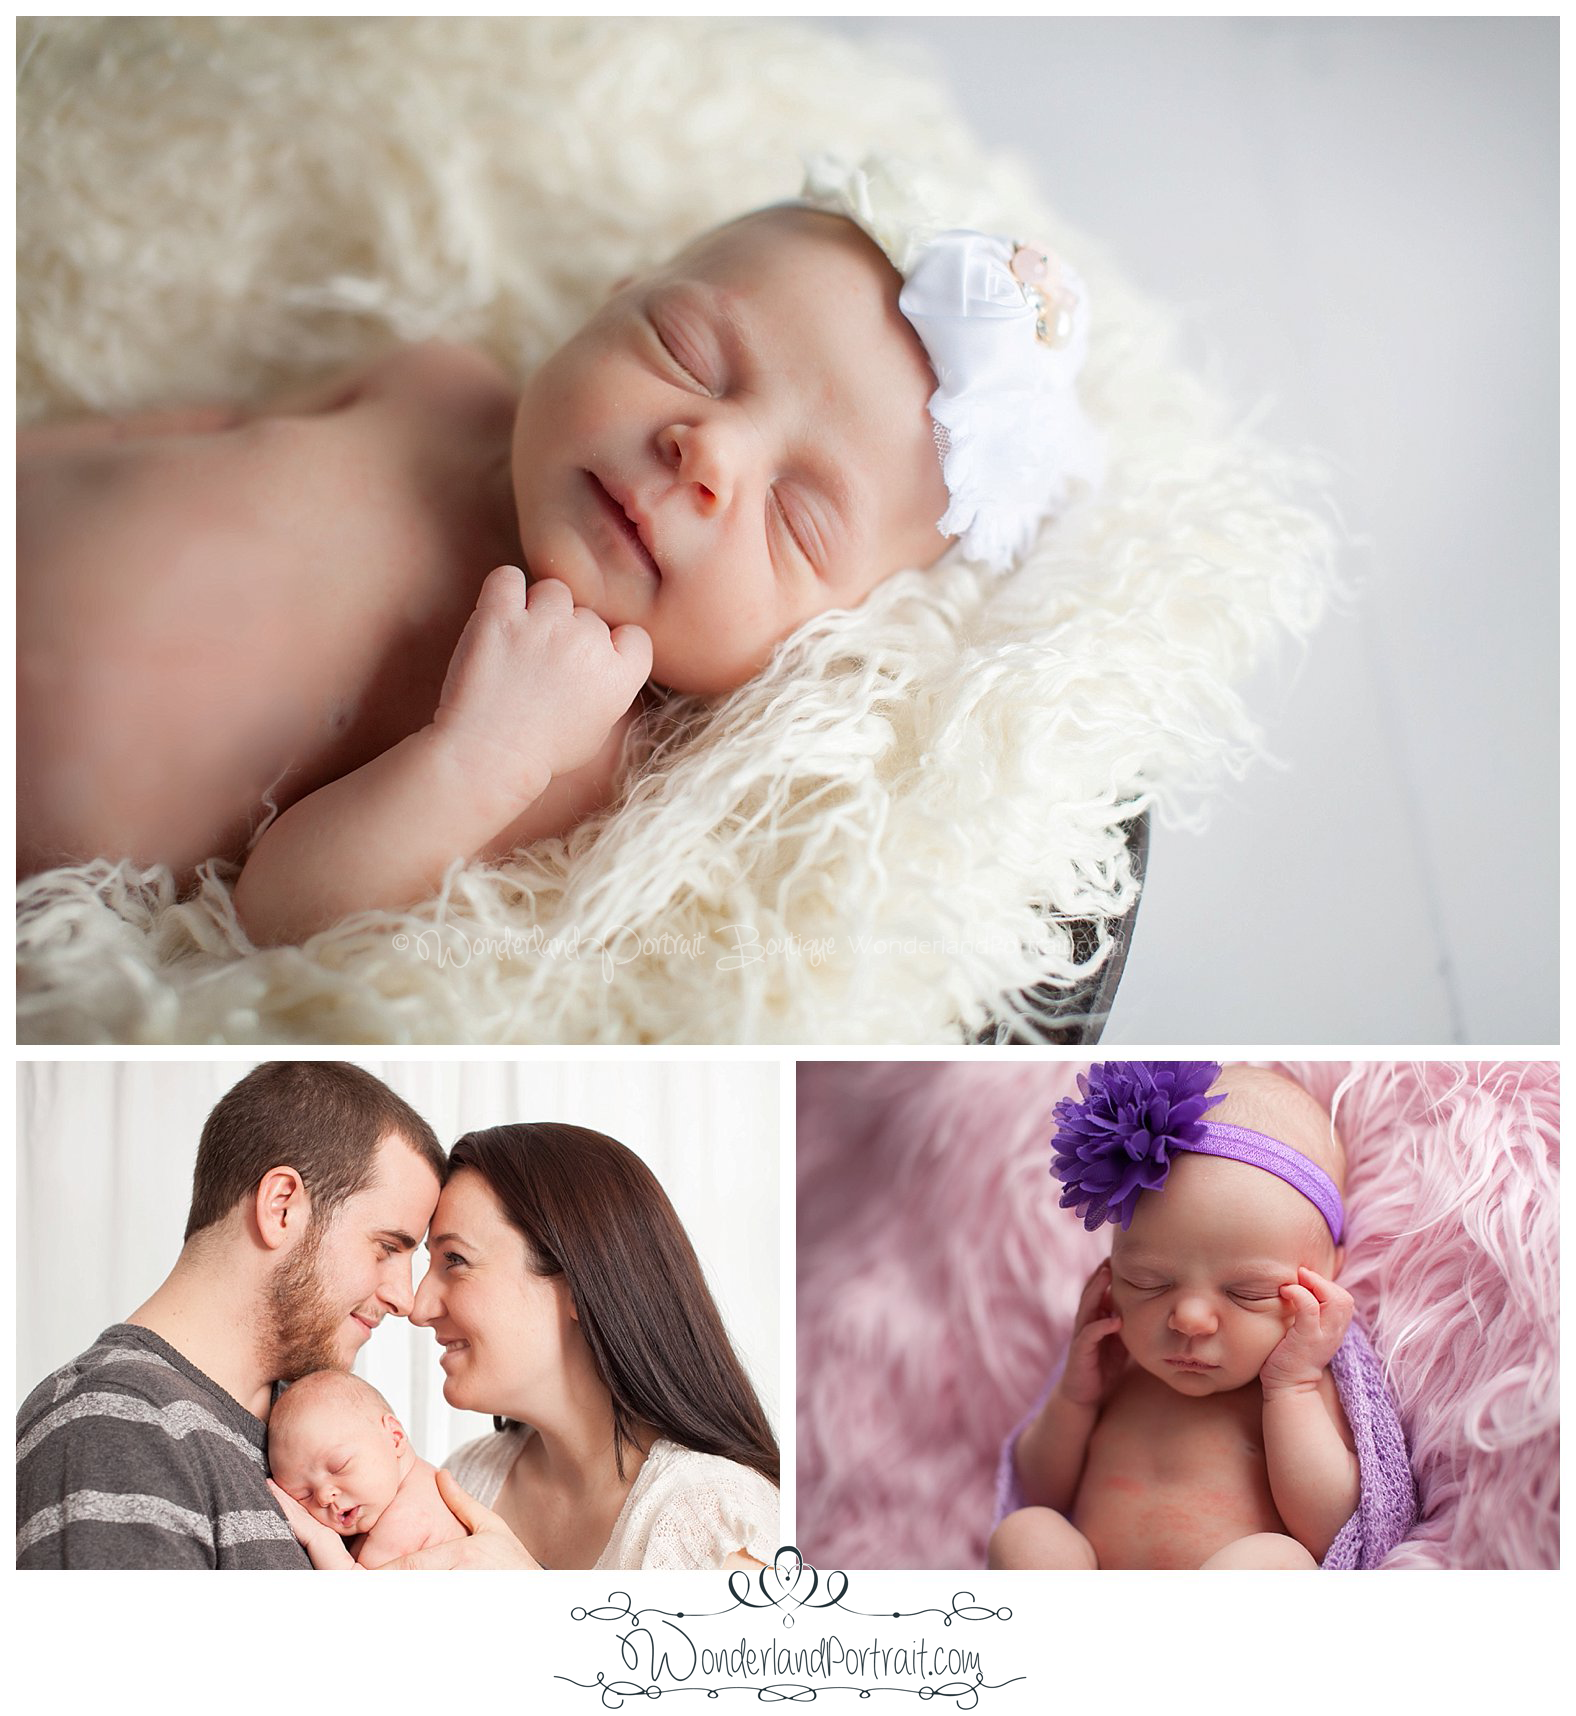 Parent pose Newborn Photos Bucks County PA | WonderlandPortrait.com